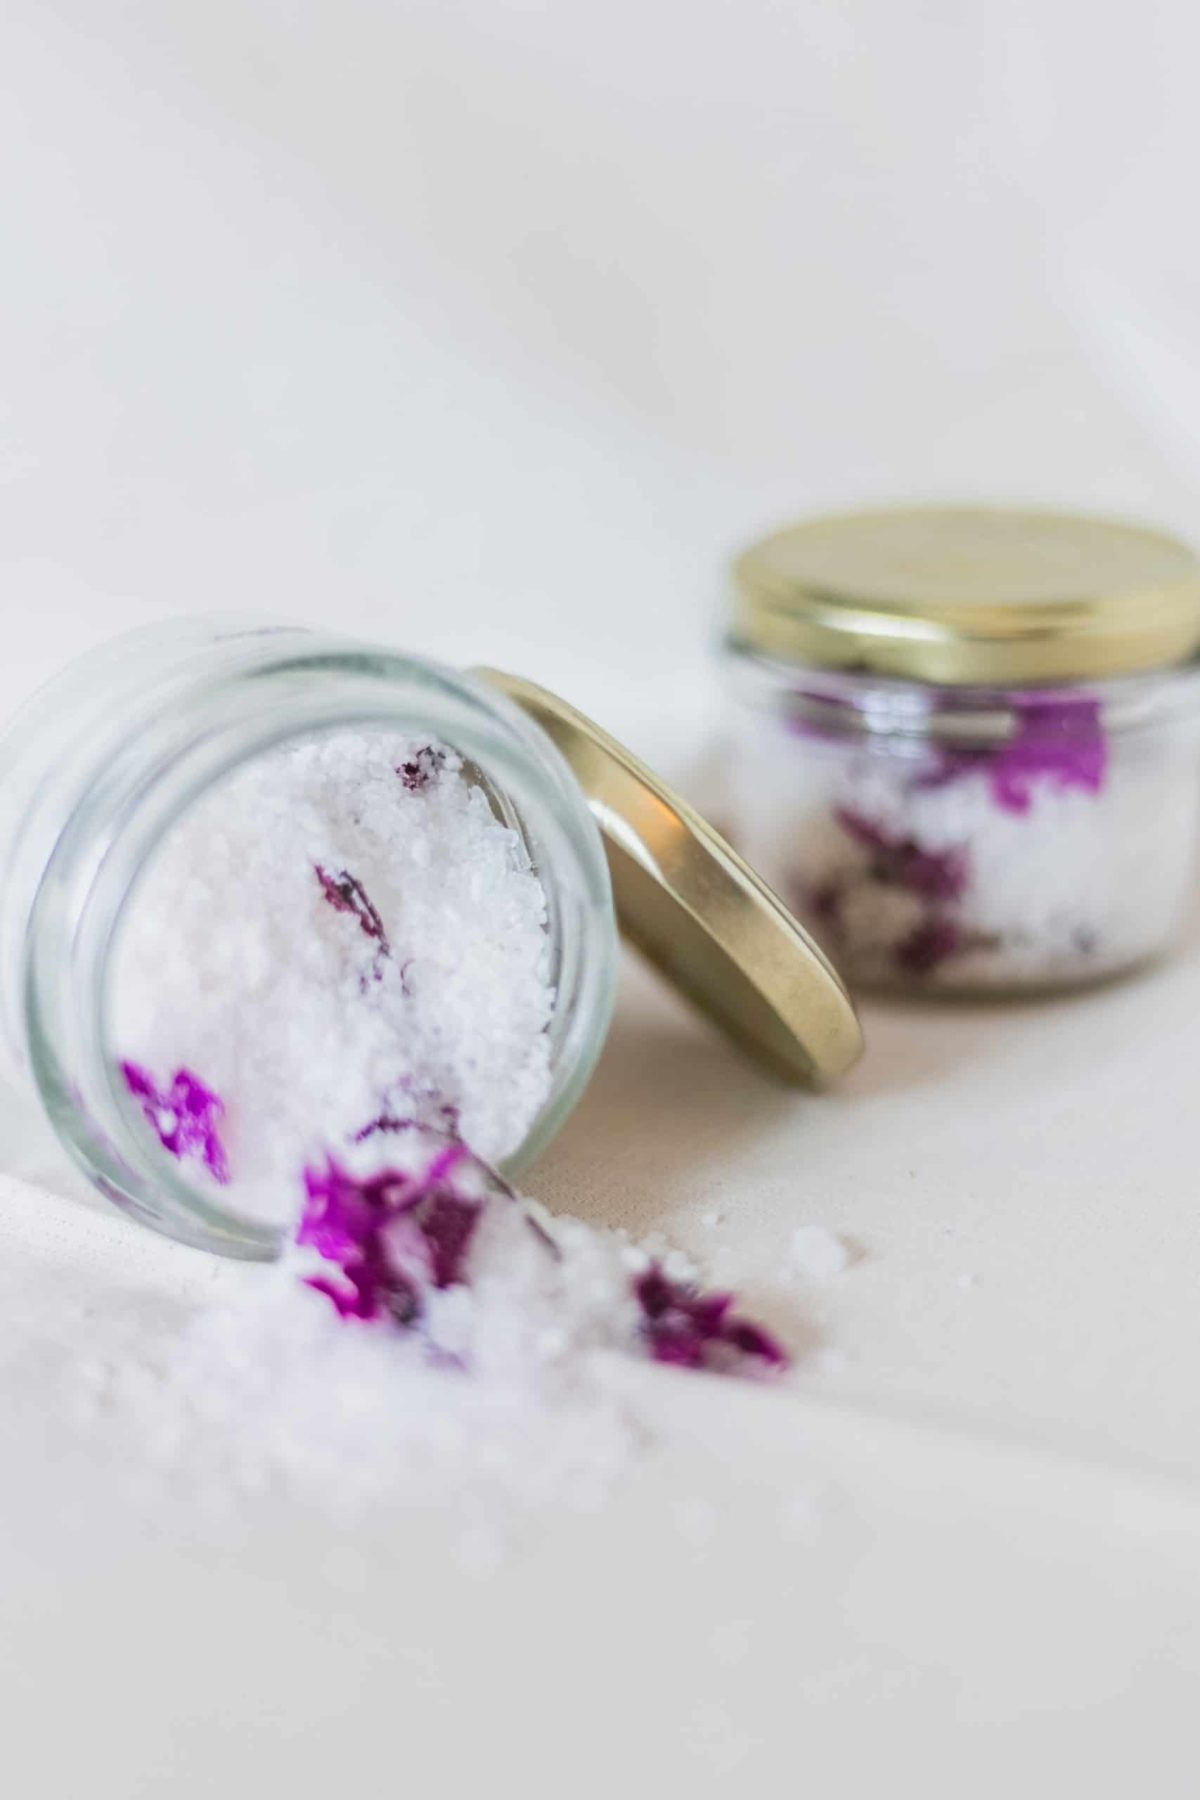 overtunred jar of bath salts containing salts and purple petals